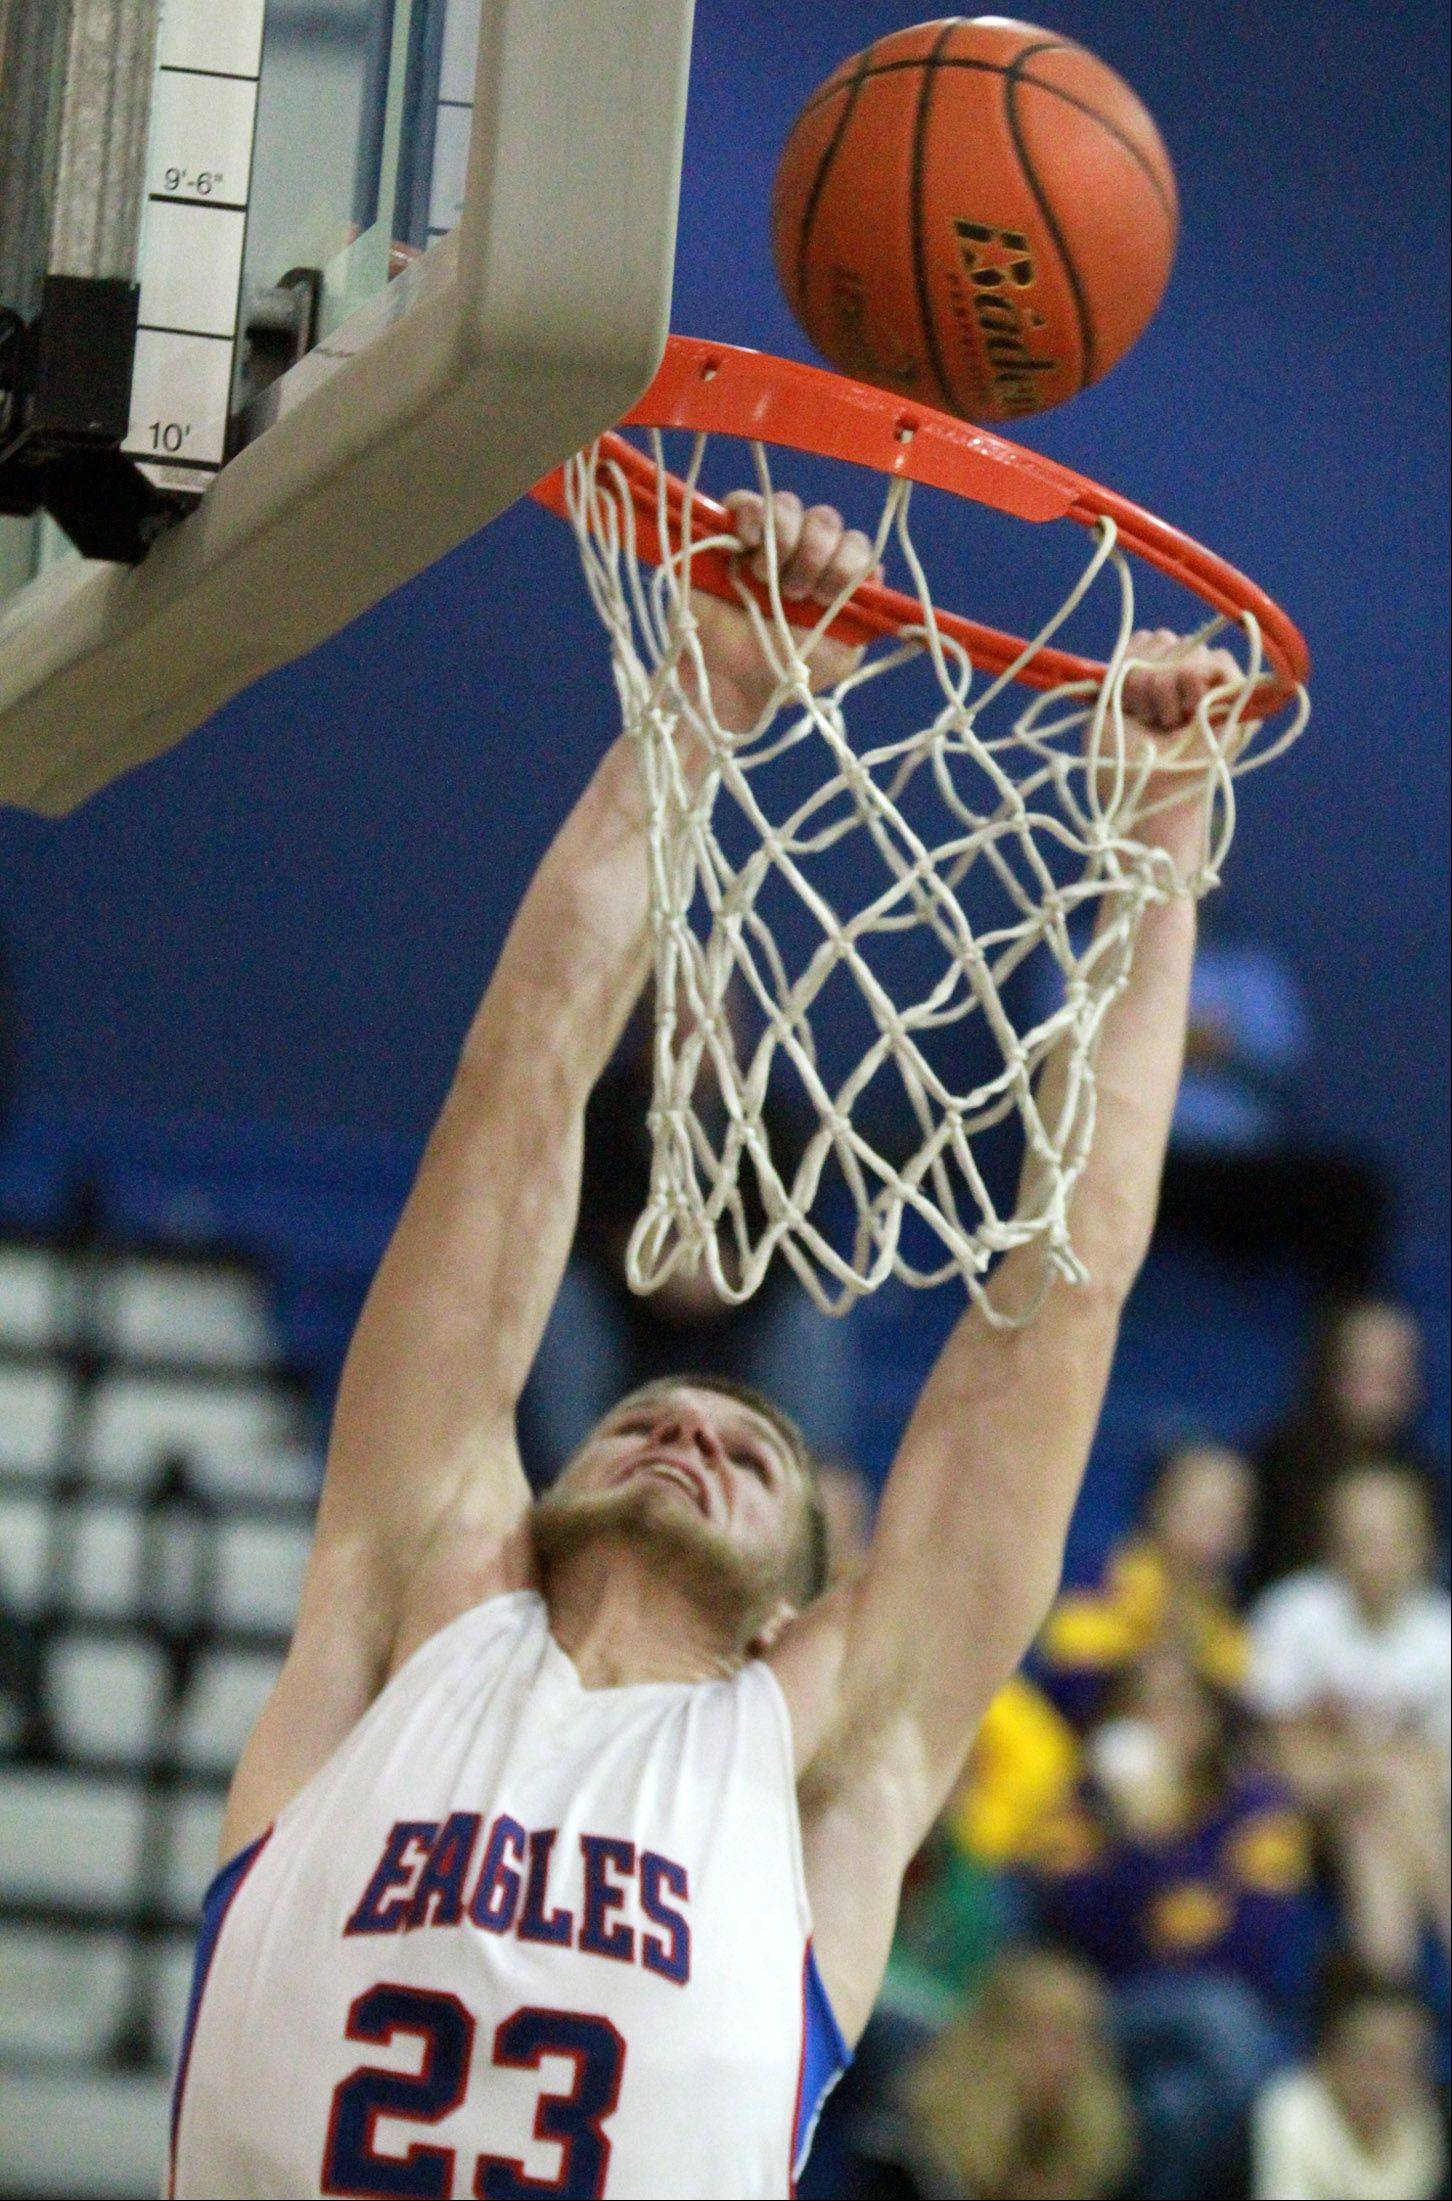 Lakes Jake Kohler attempts a breakaway dunk against Wauconda.